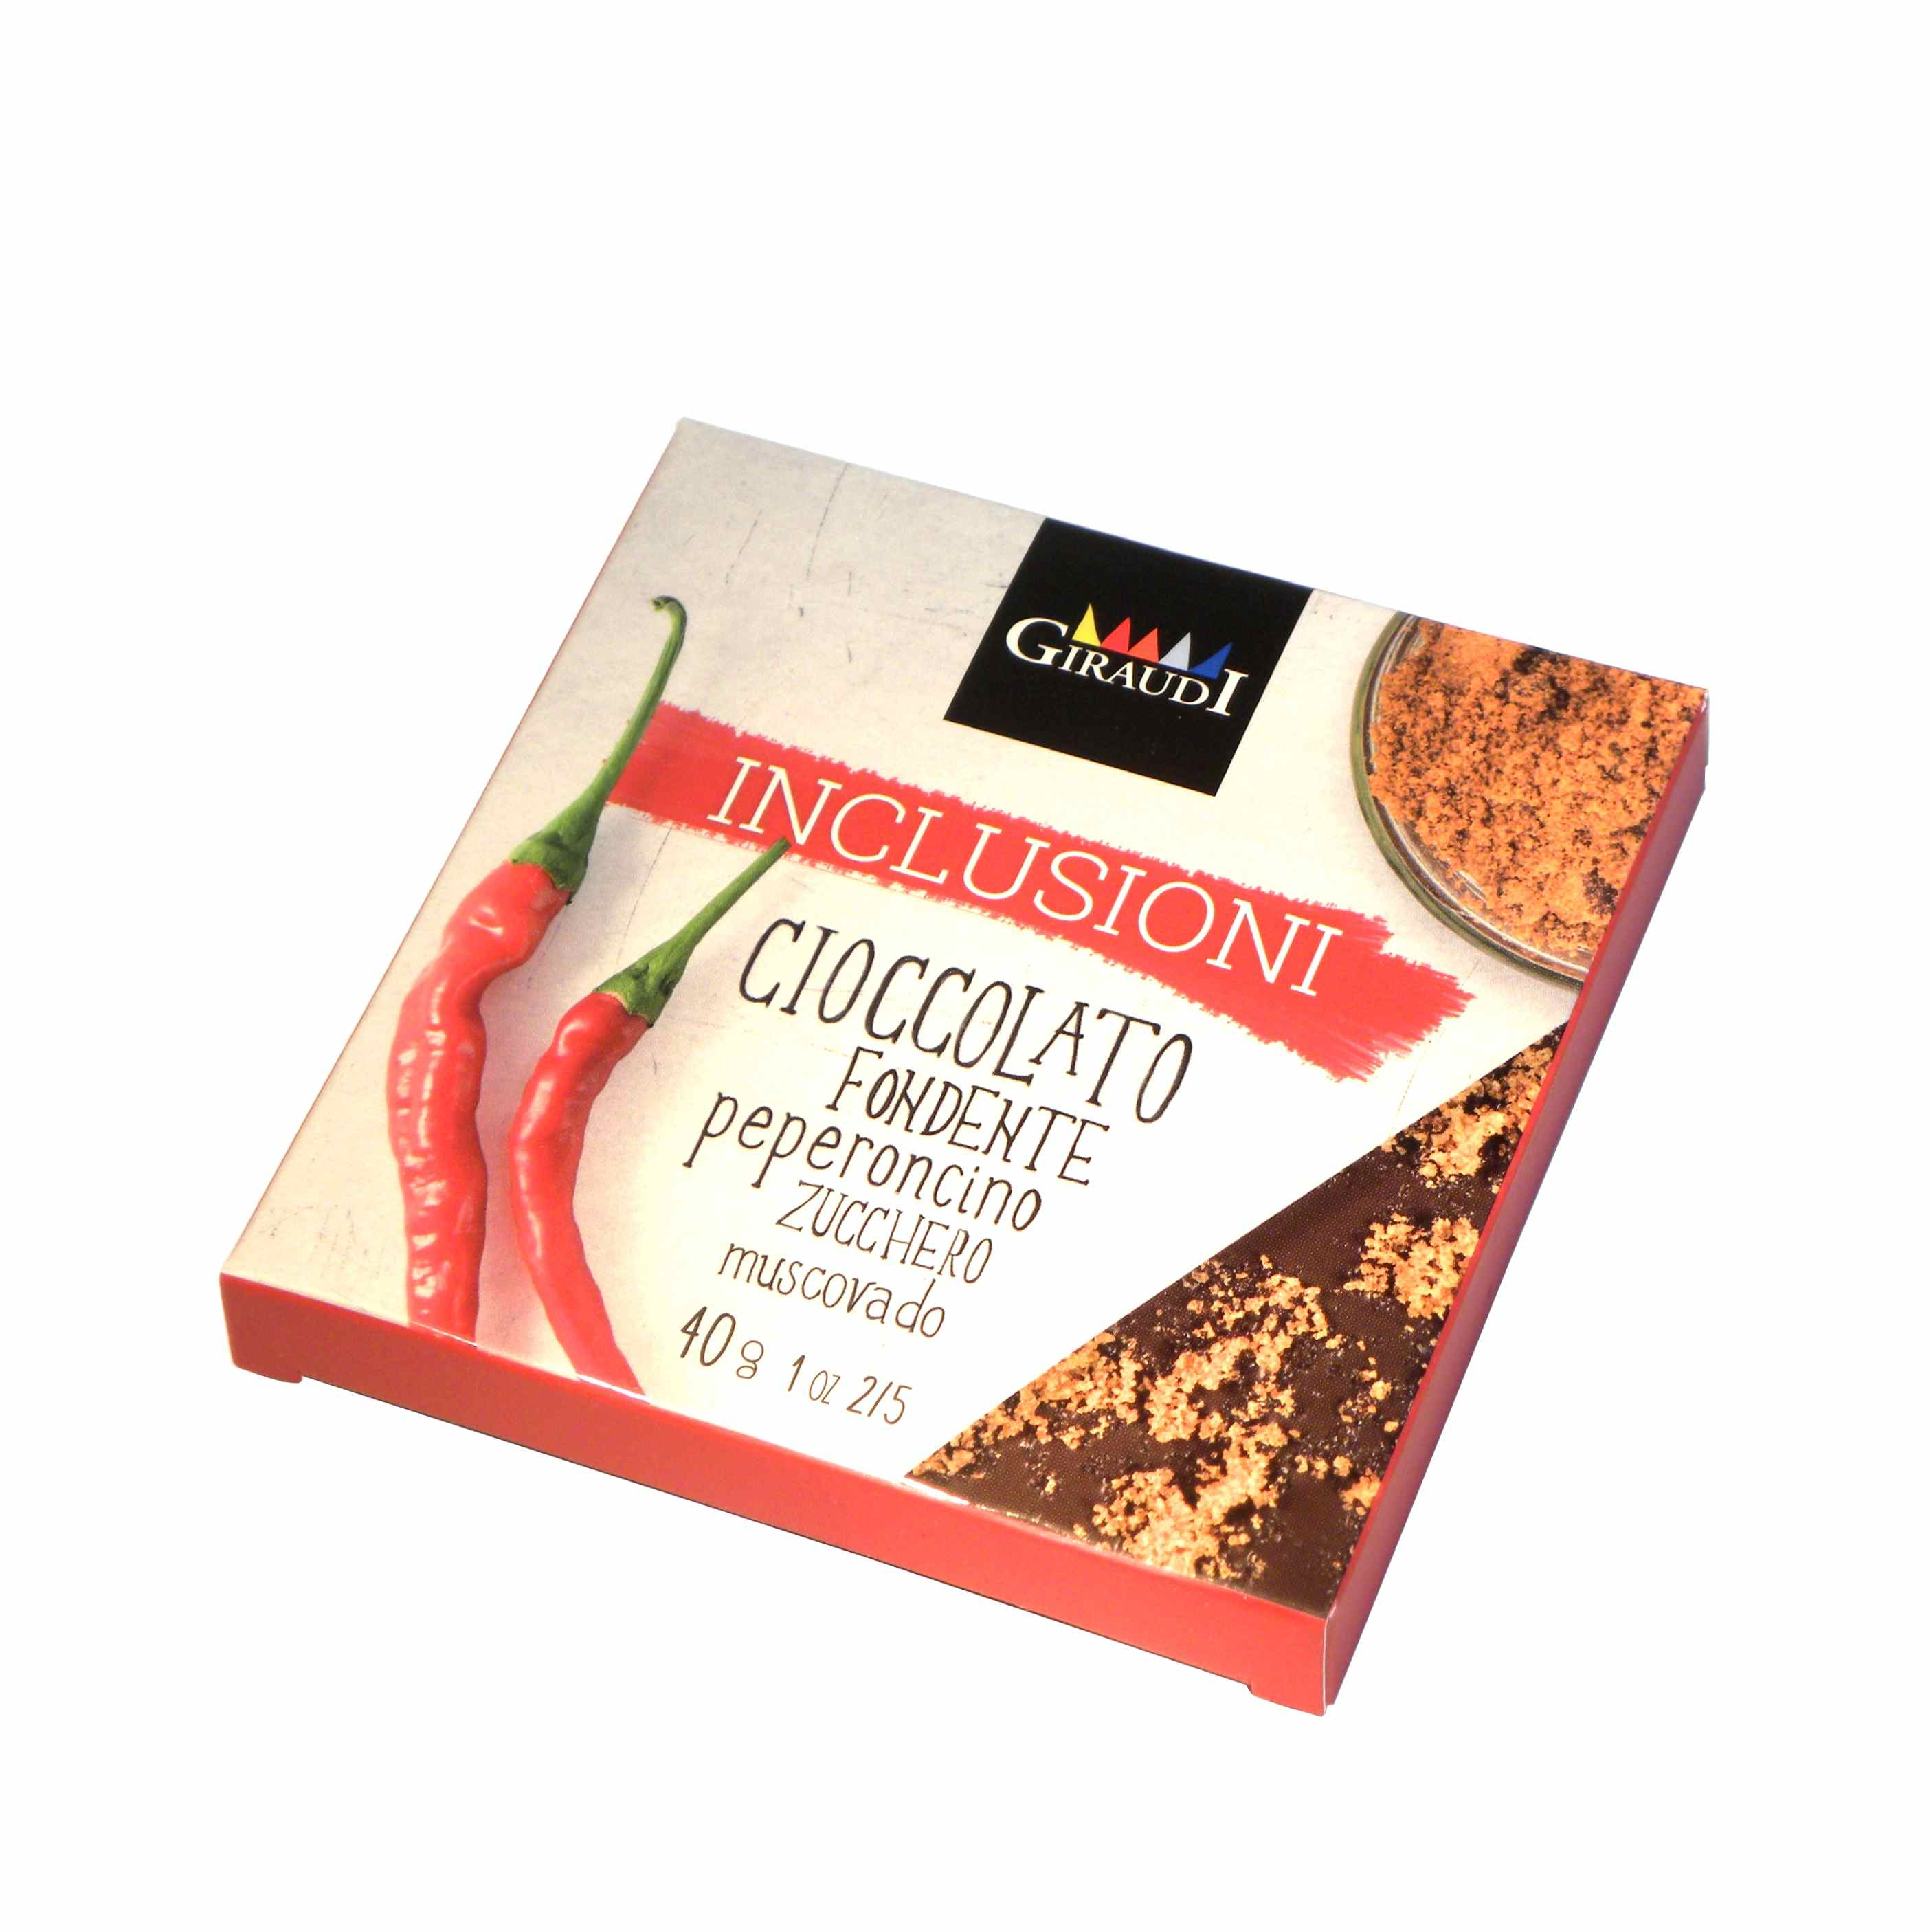 Giraudi tavoletta inclusioni cioccolato fondente peperoncino zucchero muscovado – Giraudi chocolate bar Dark Chocolate with Chili Pepper and Muscovado Sugar  – Gustorotondo – Italian food boutique